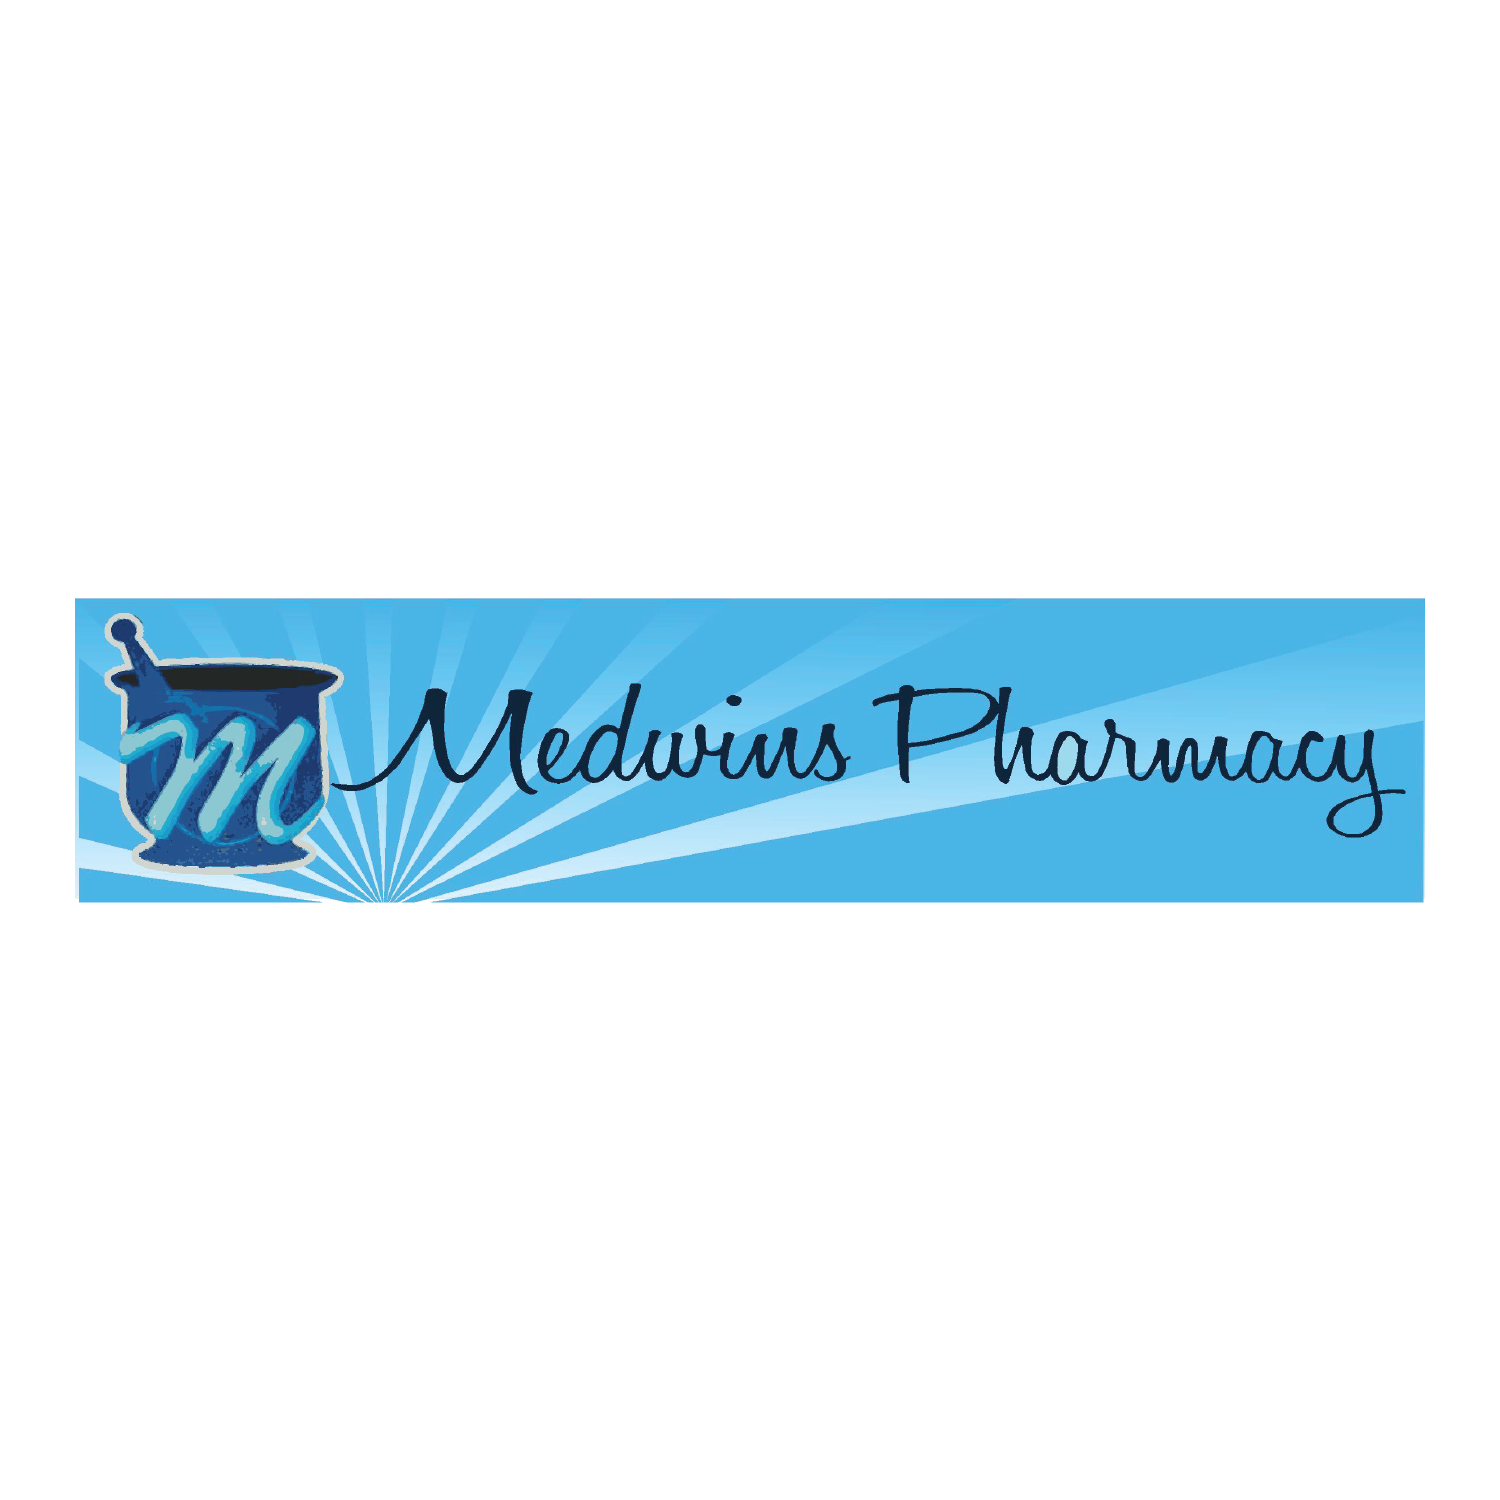 Medwins Pharmacy